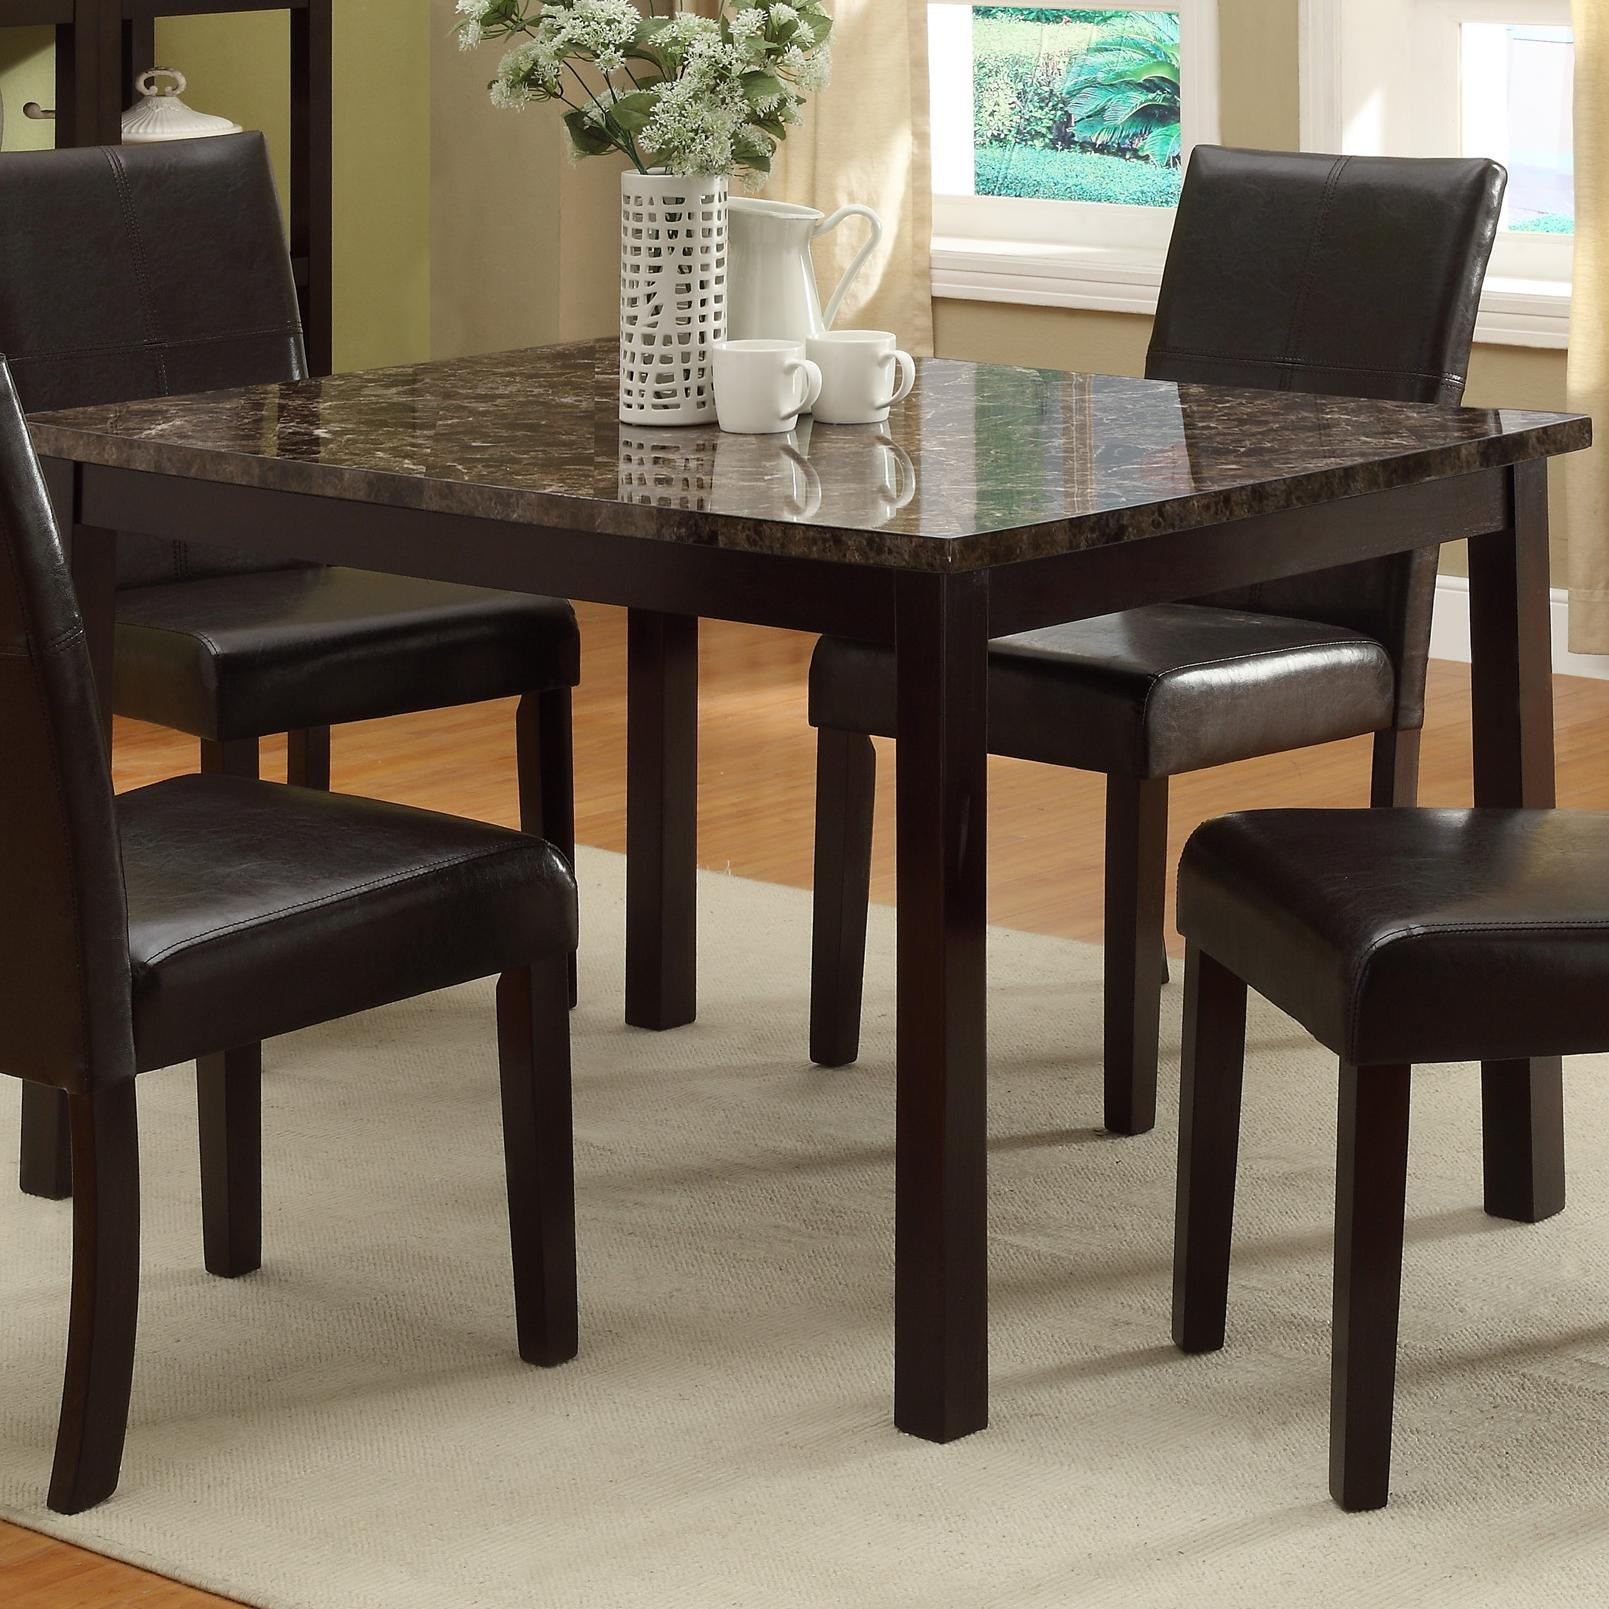 5pc Dining Room Table W 4 Side Chairs Uph Black Seat Back